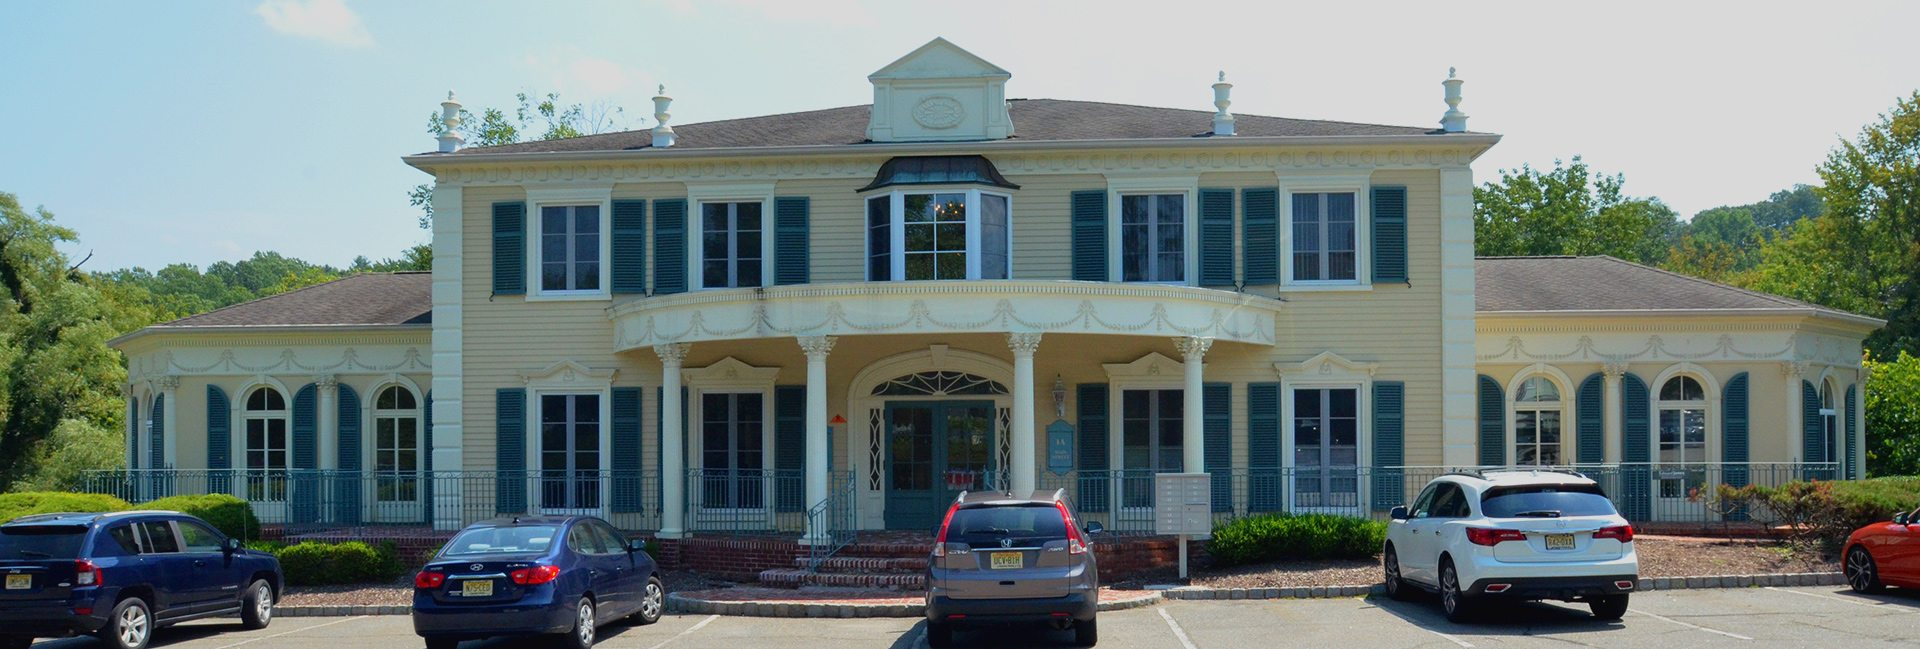 1A Main St Office Complex in Sparta NJ - Front View